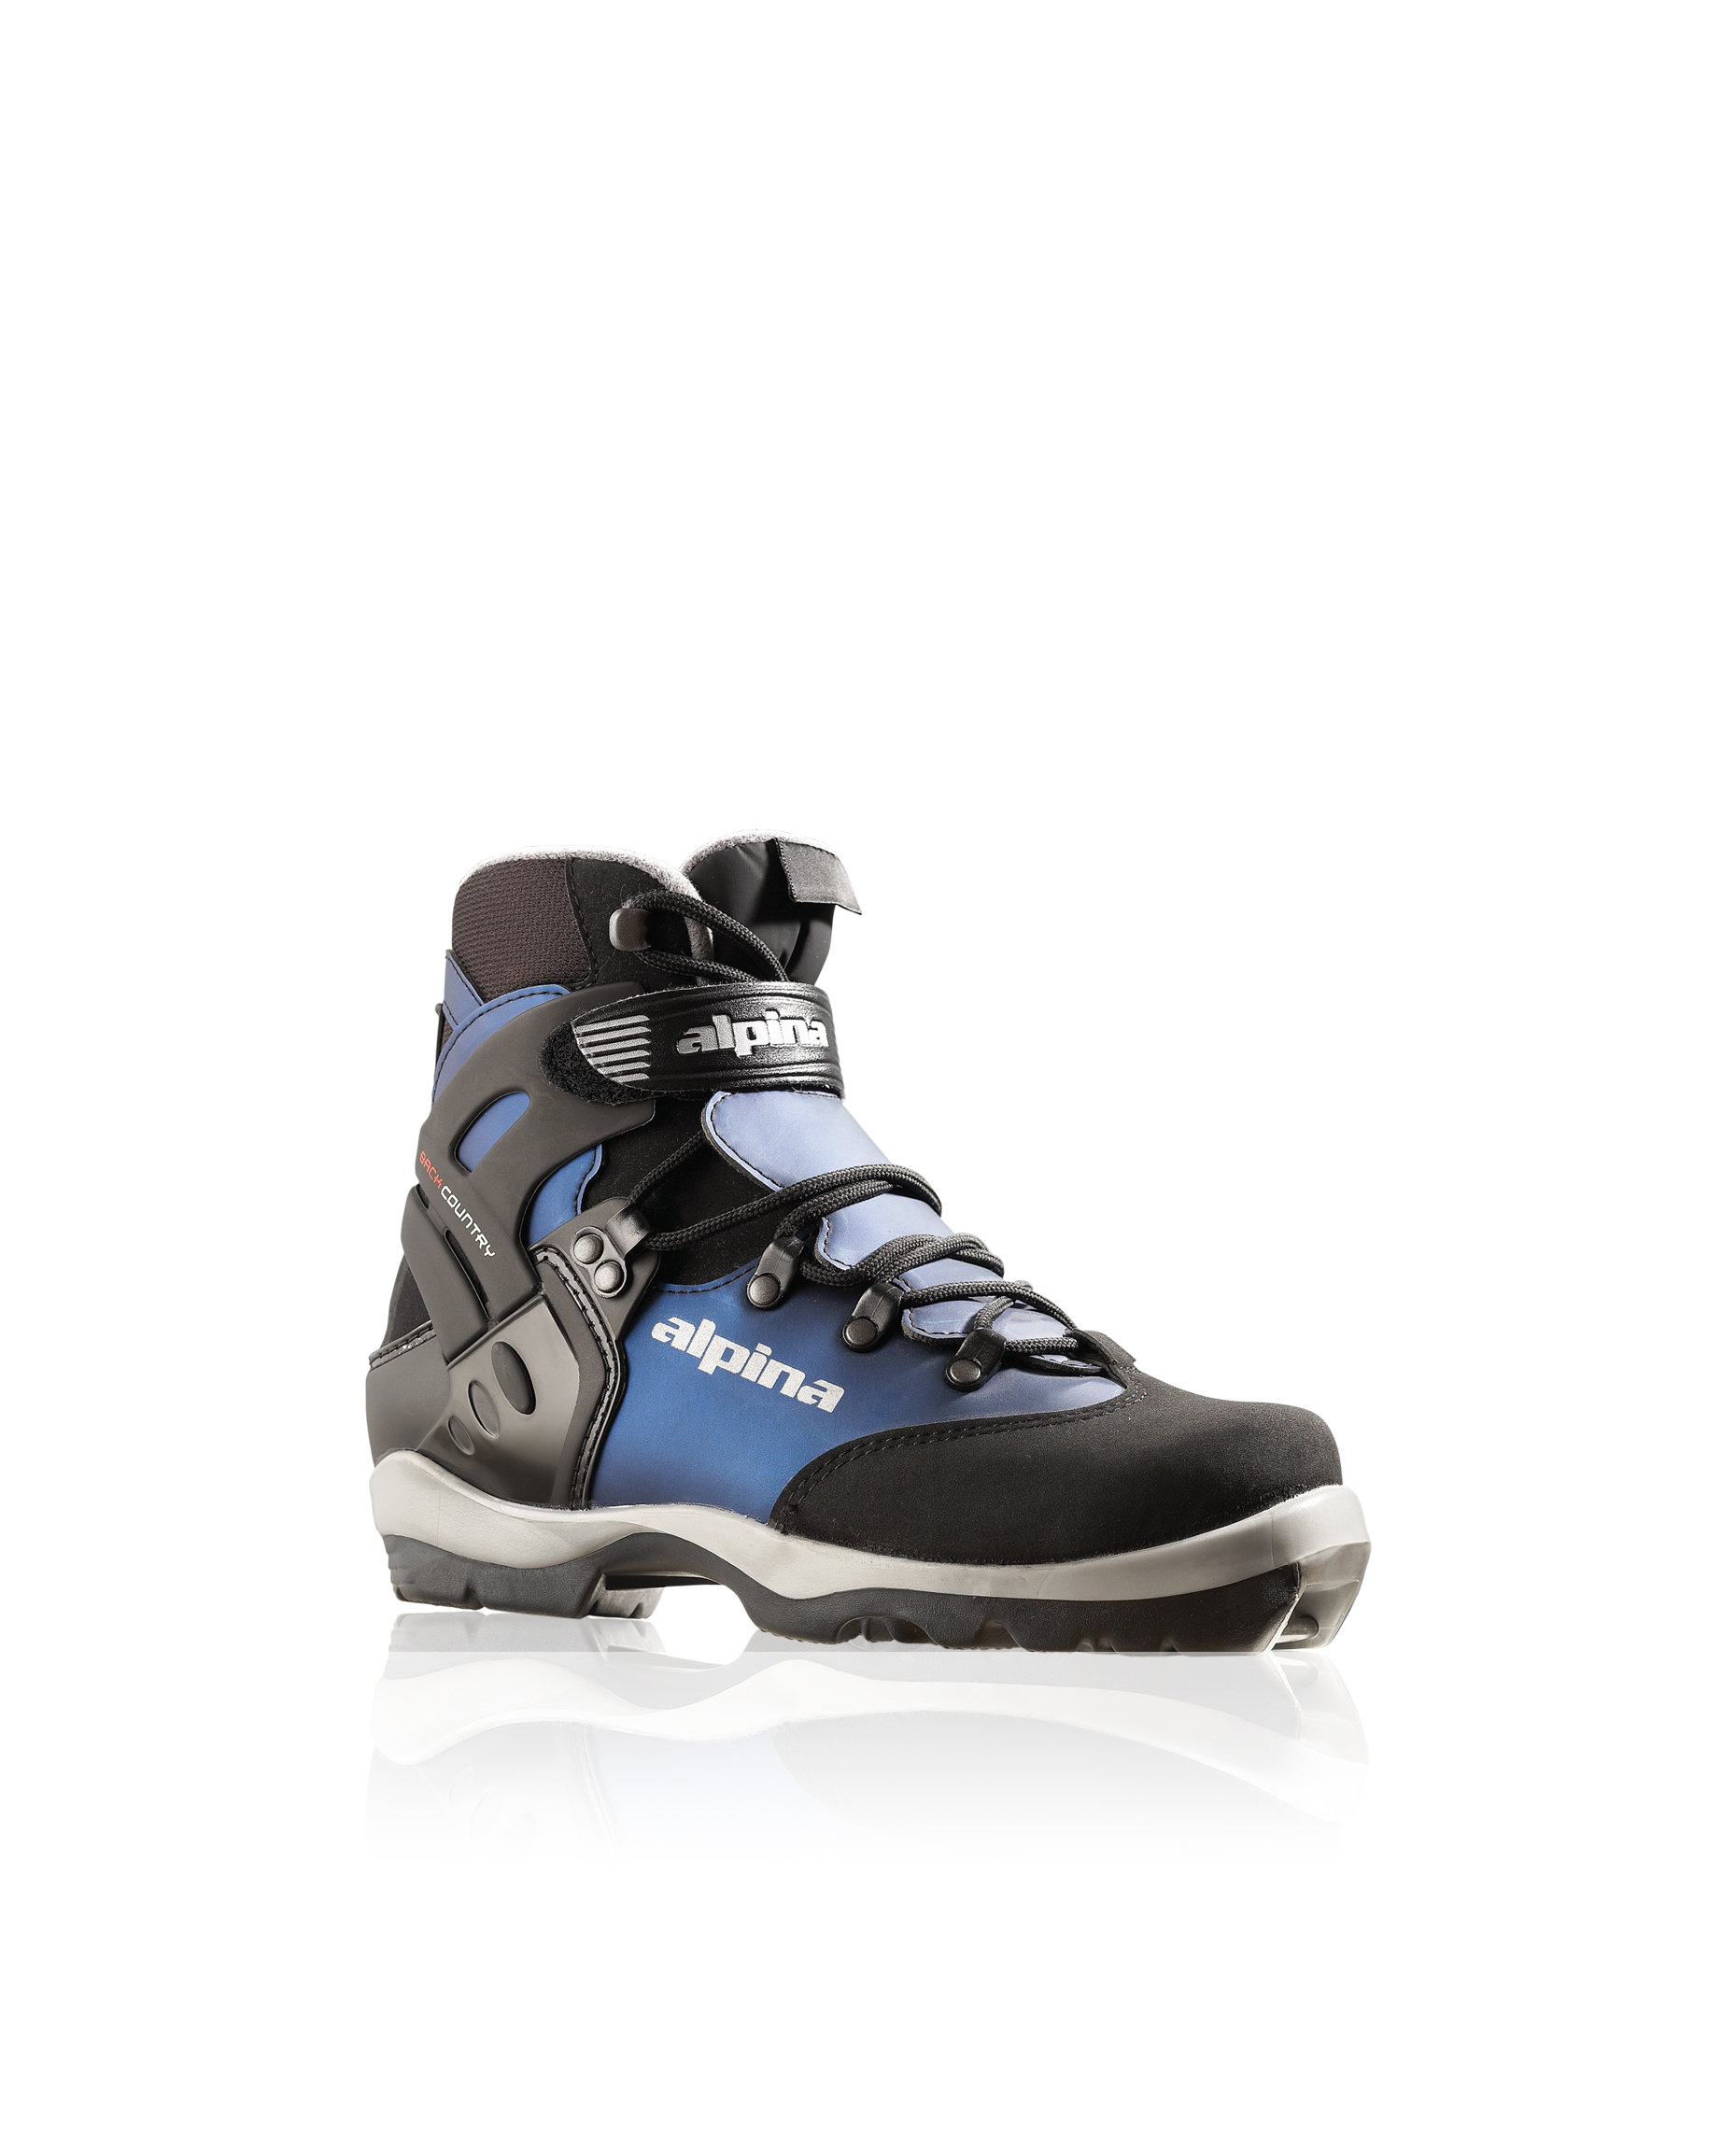 ALPINA Backcountry Boot BC L - Alpina 1550